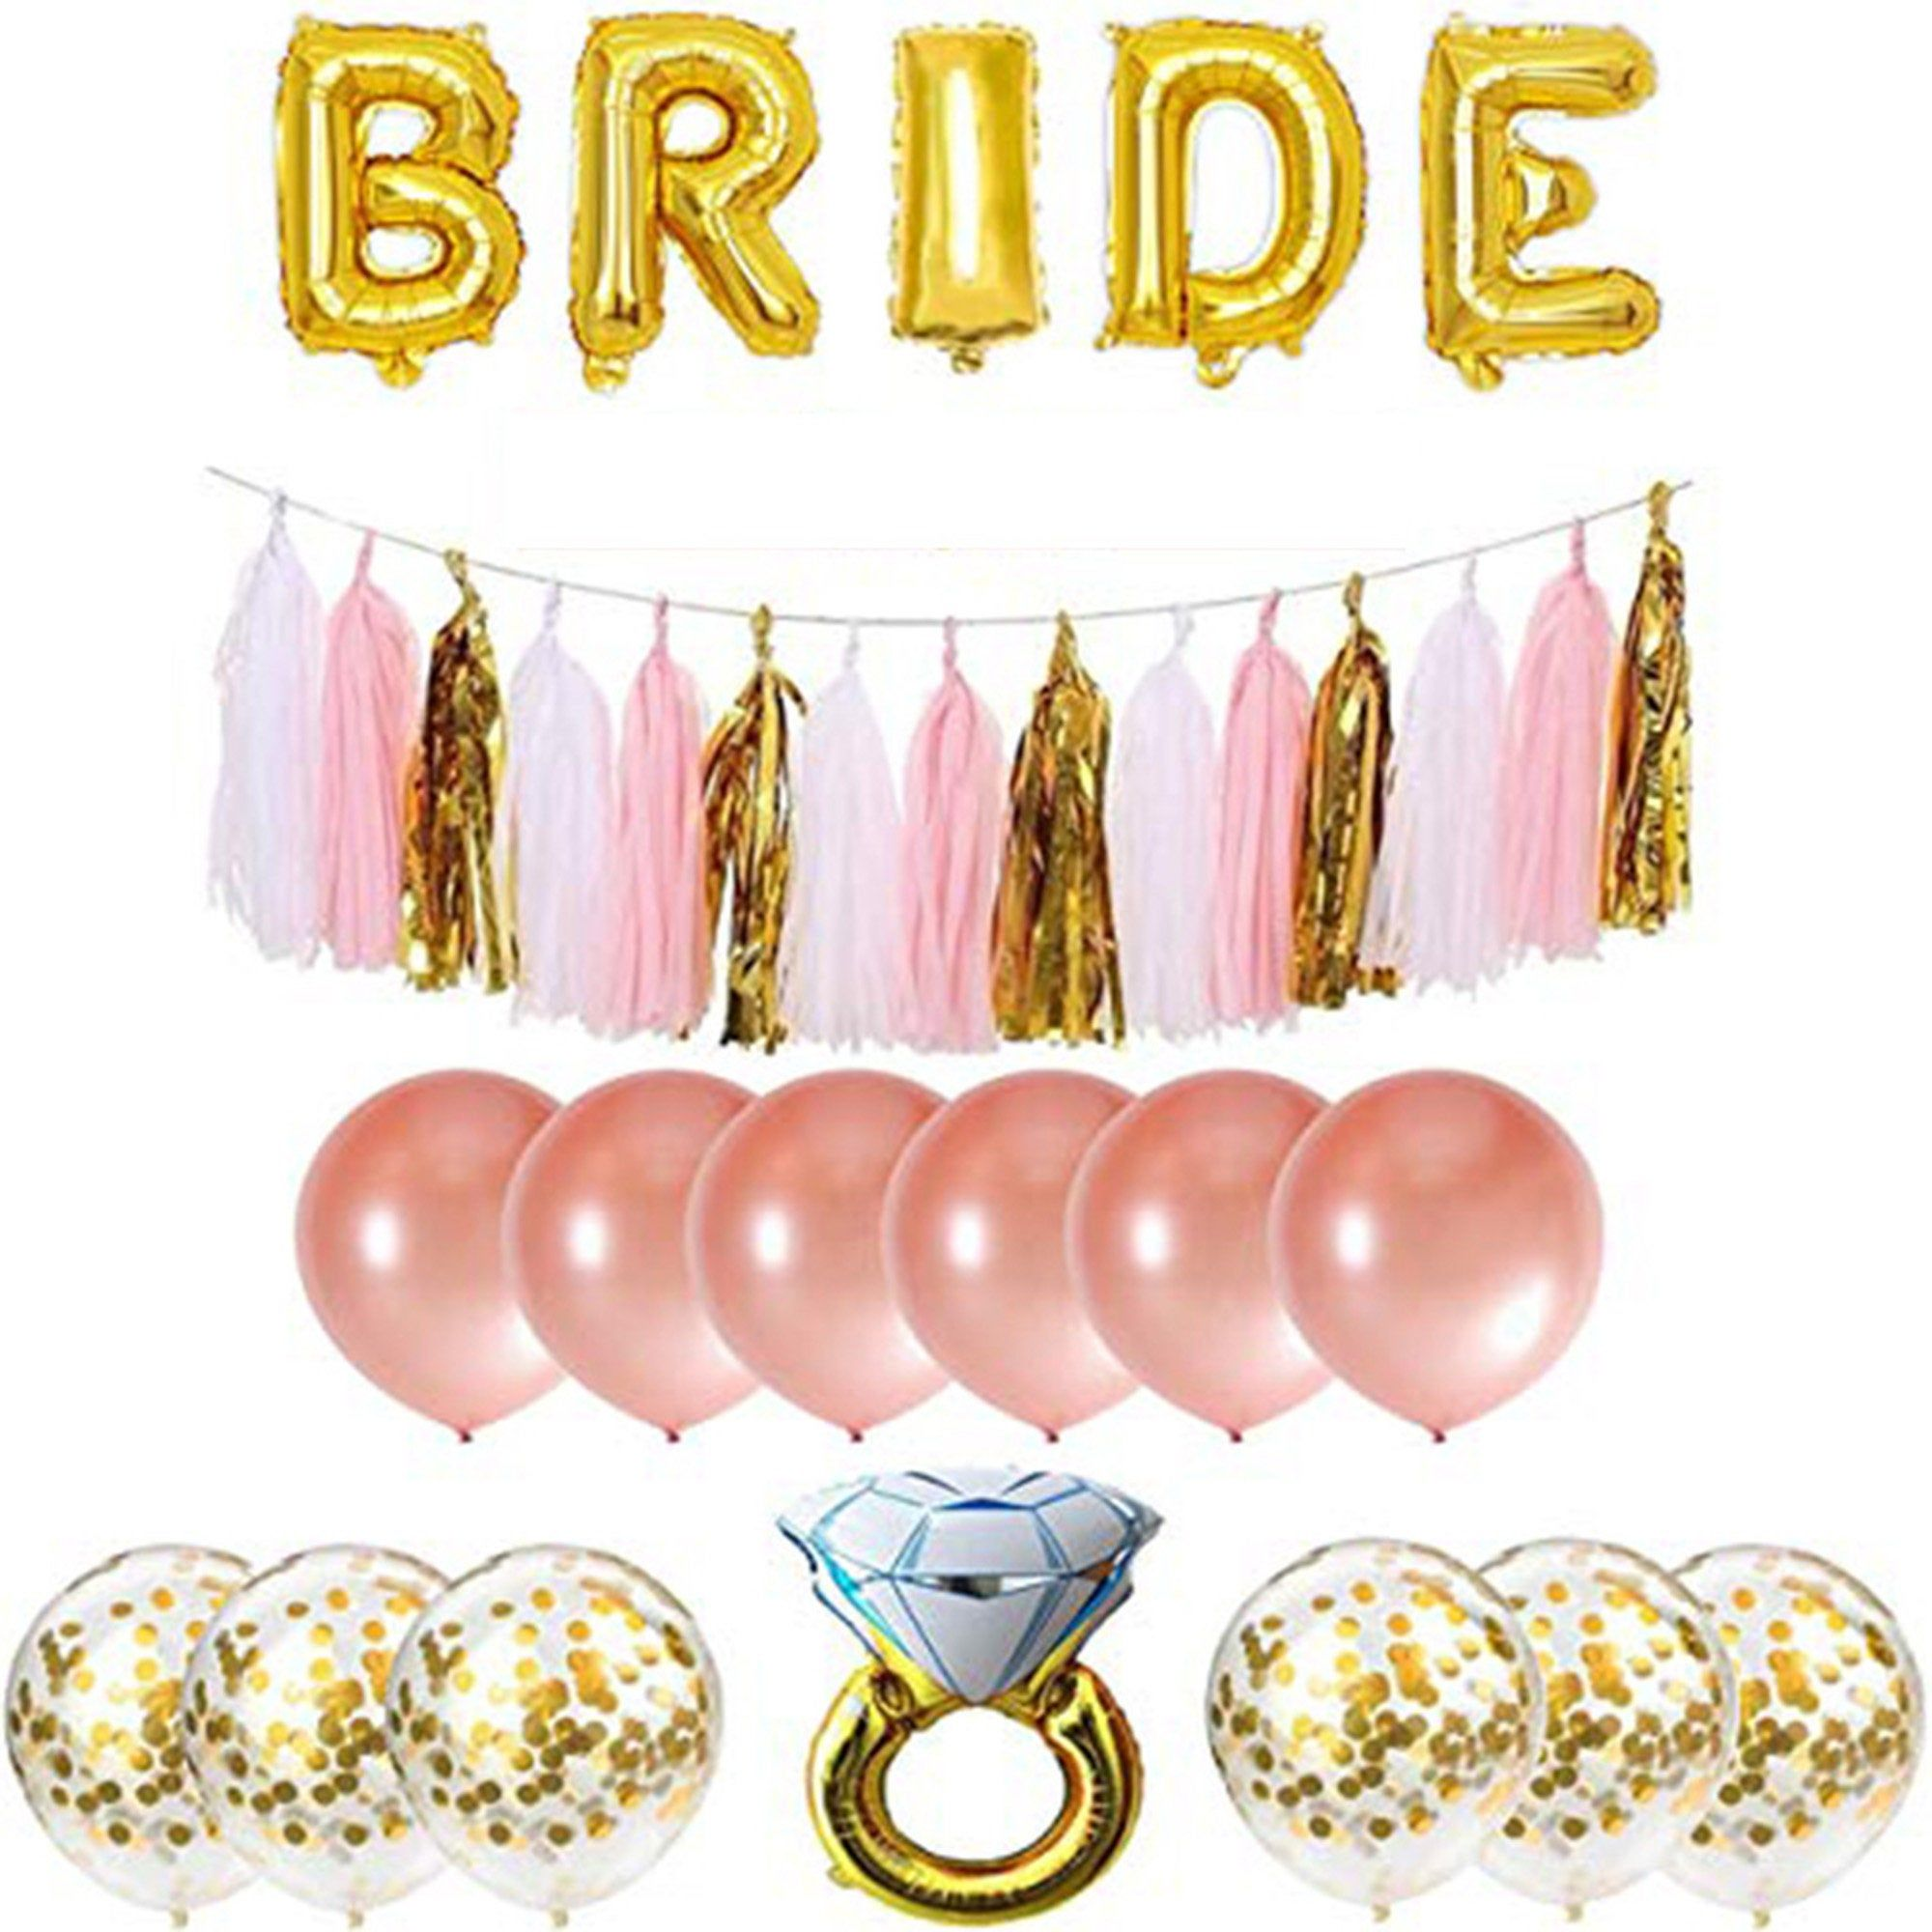 Gold Bride To Be Diamond Ring Wedding Banner Bachelorette Party Decoration